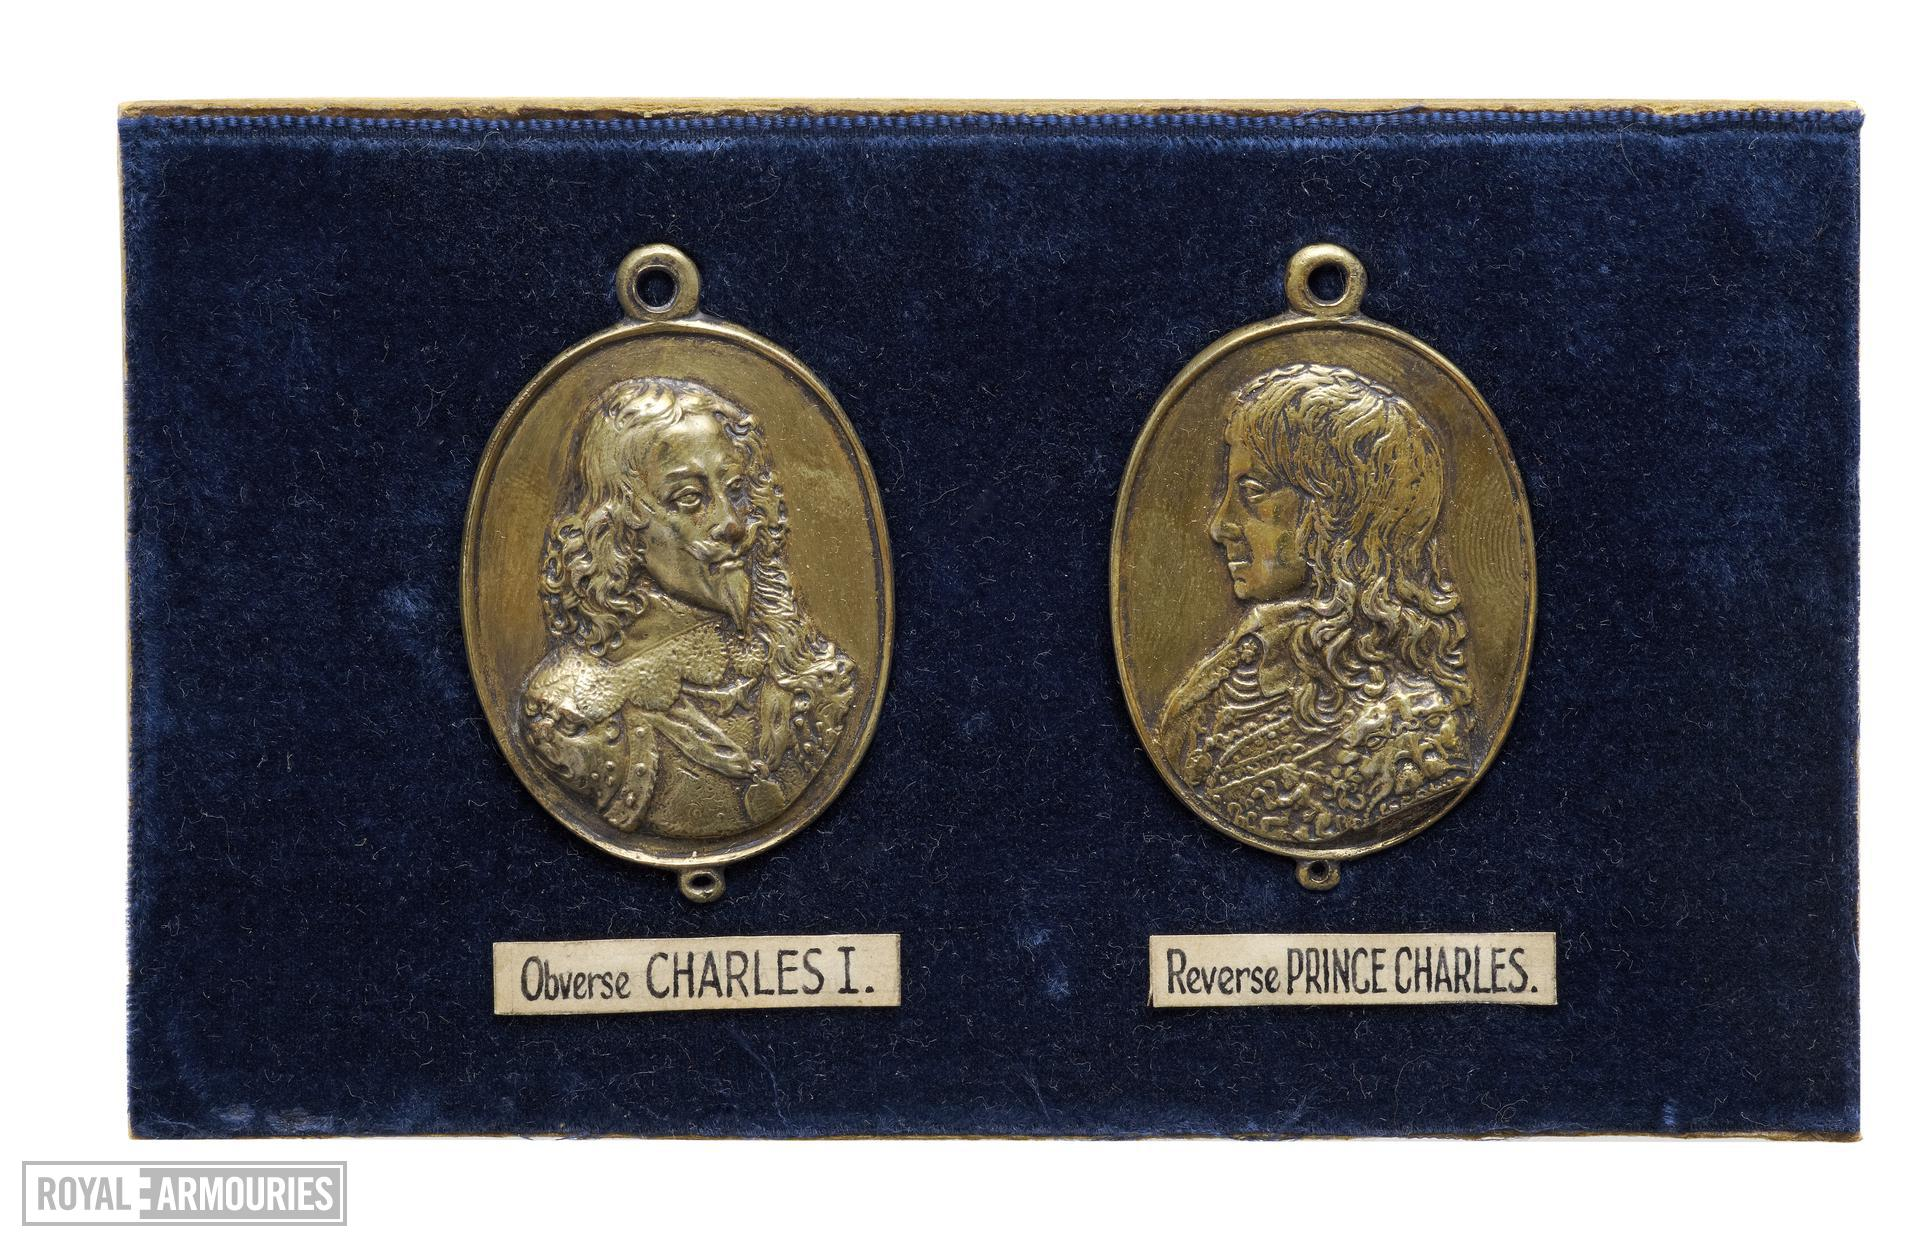 Facsimile of a pair of 'Forlorn Hope' medals, showing Charles I wearing the Lion Armour (XVIII.564)